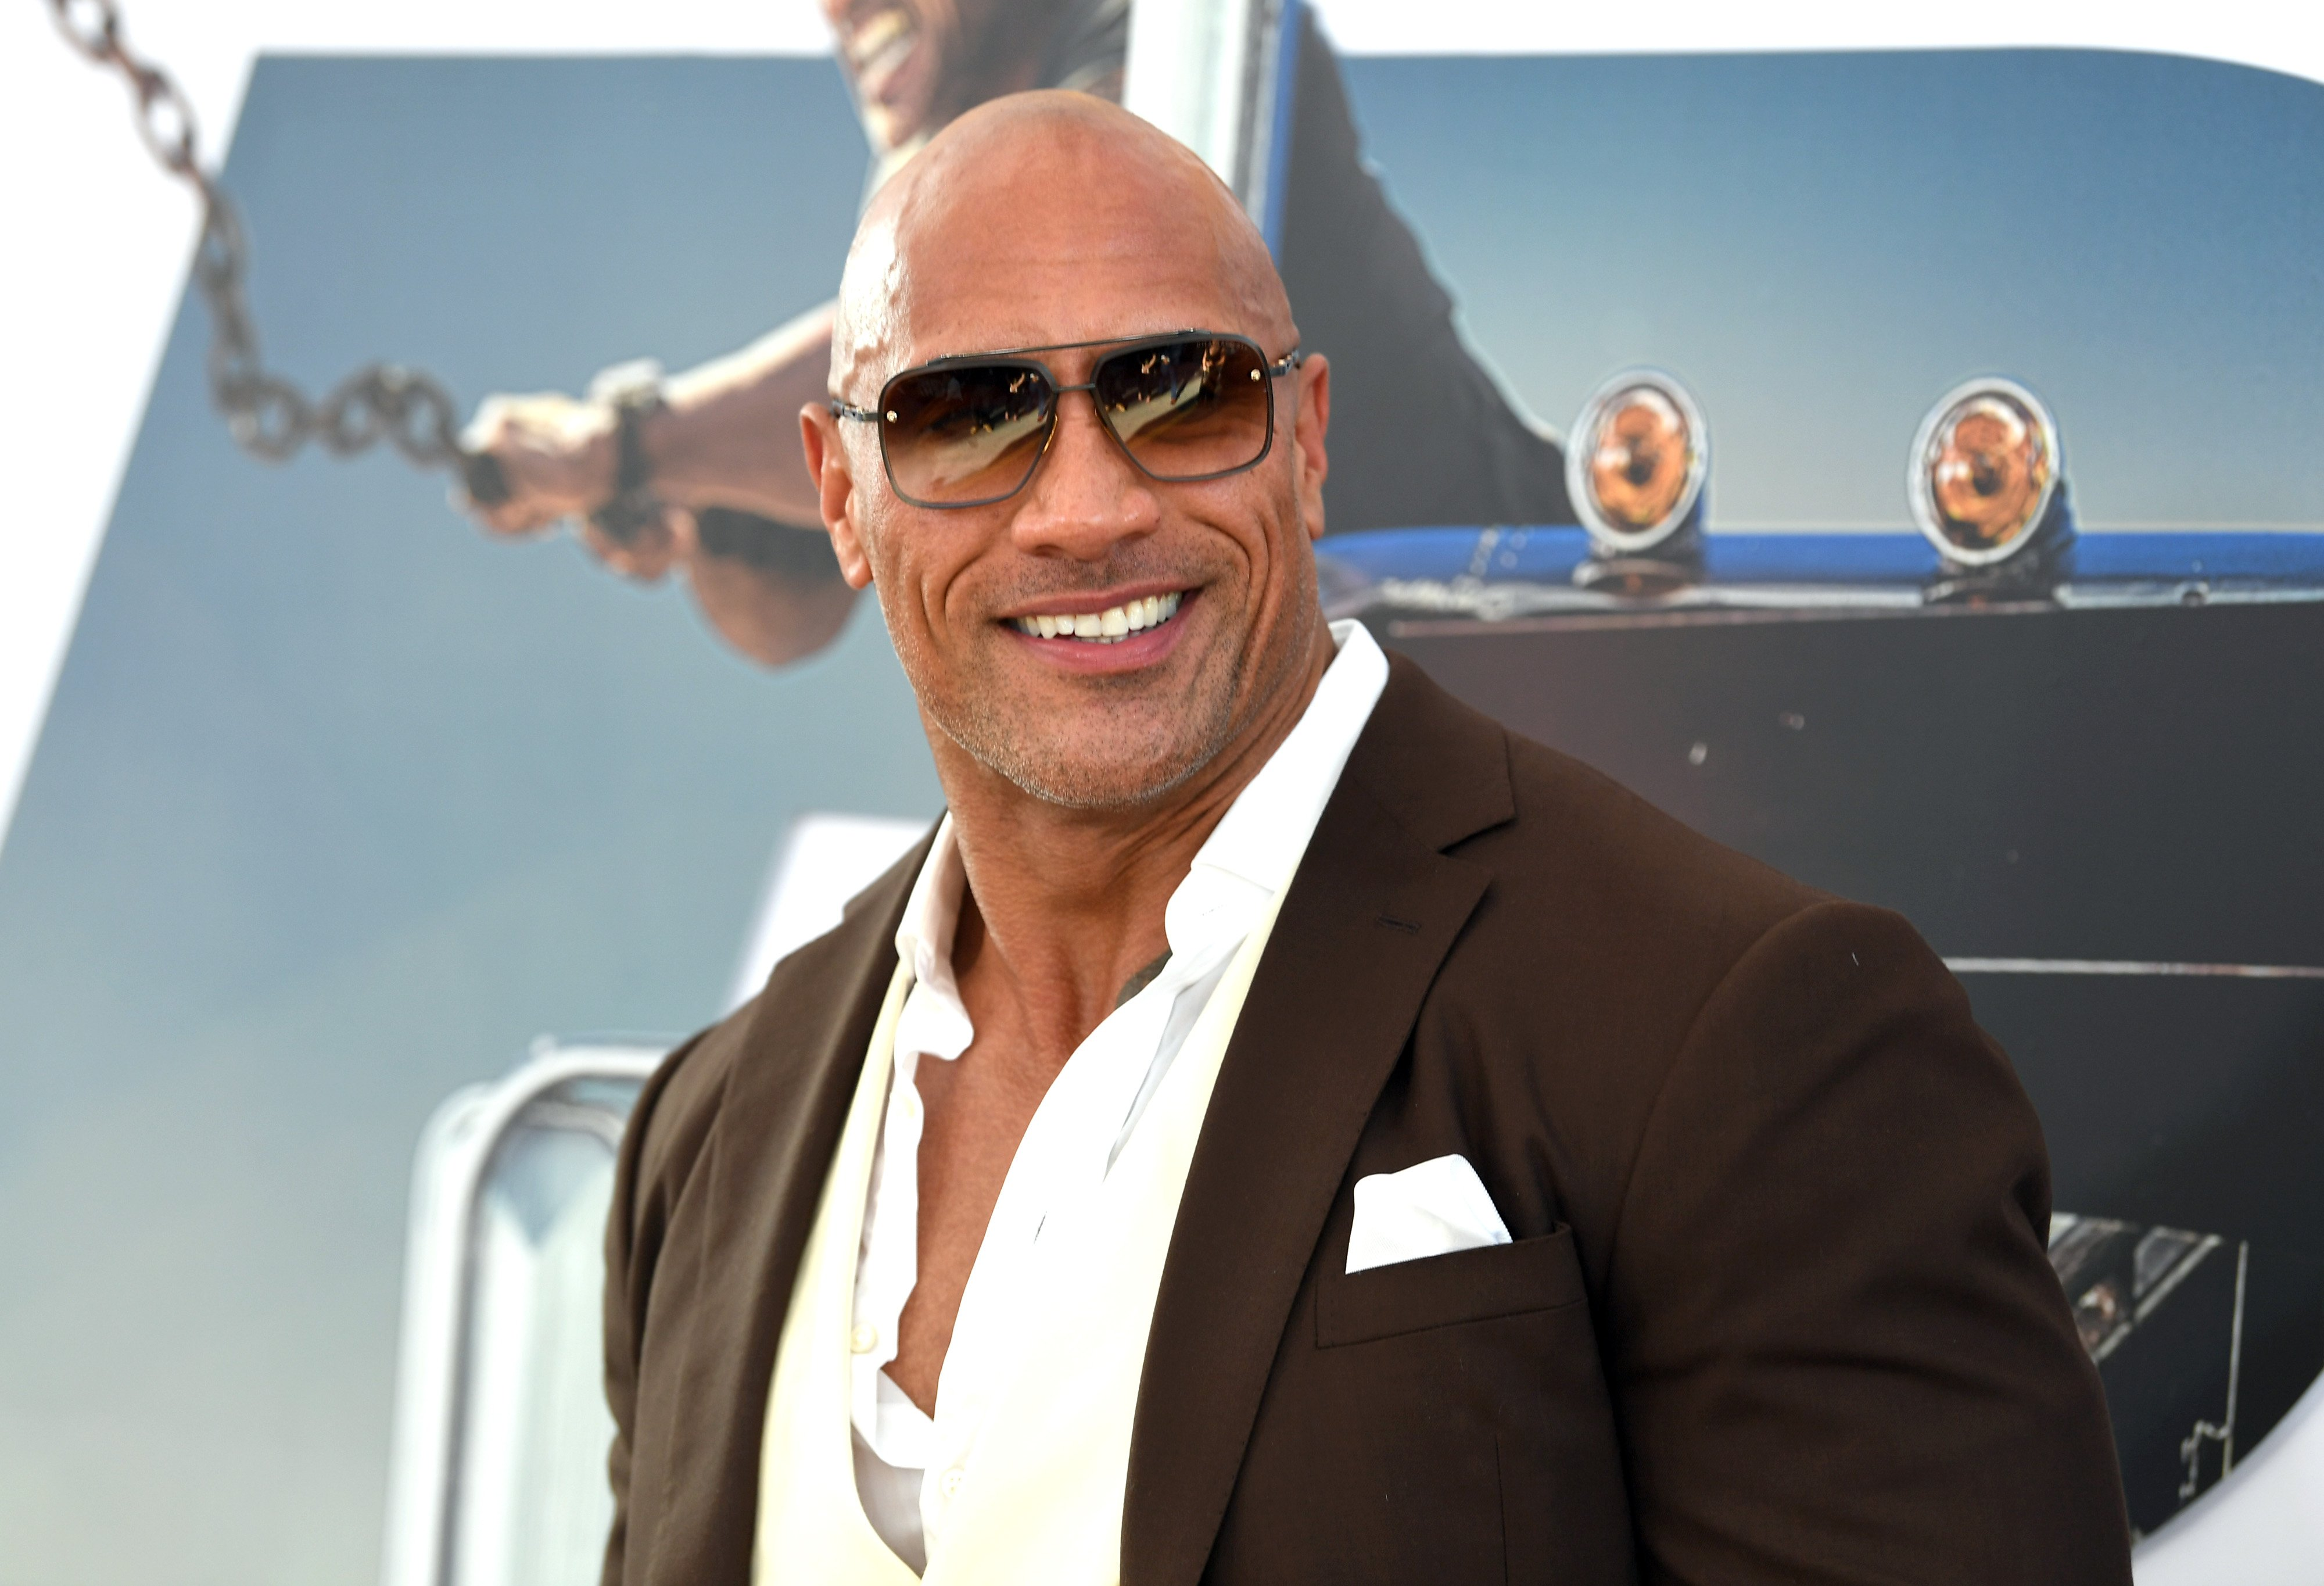 """Dwayne Johnson arrives at the premiere of Universal Pictures' """"Fast & Furious Presents: Hobbs & Shaw"""" at Dolby Theatre on July 13, 2019 in Hollywood, California 